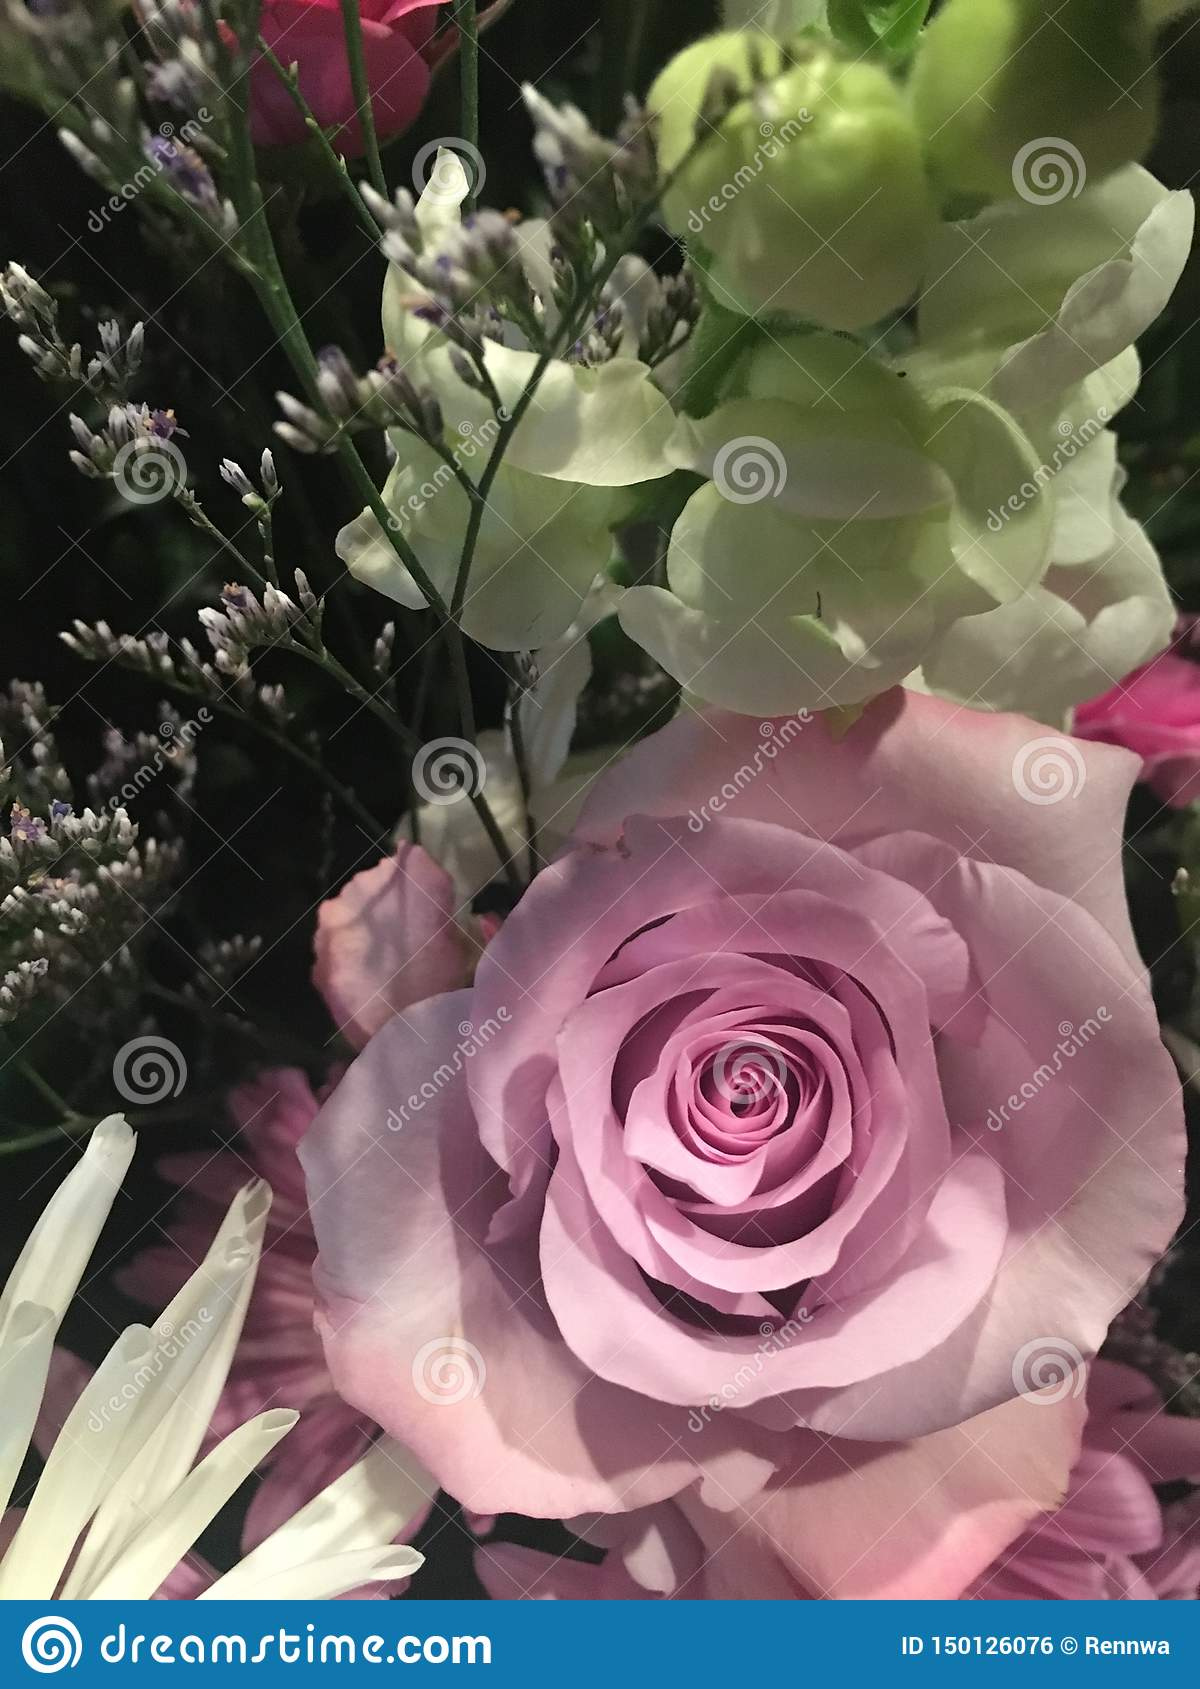 This Rose is Pink